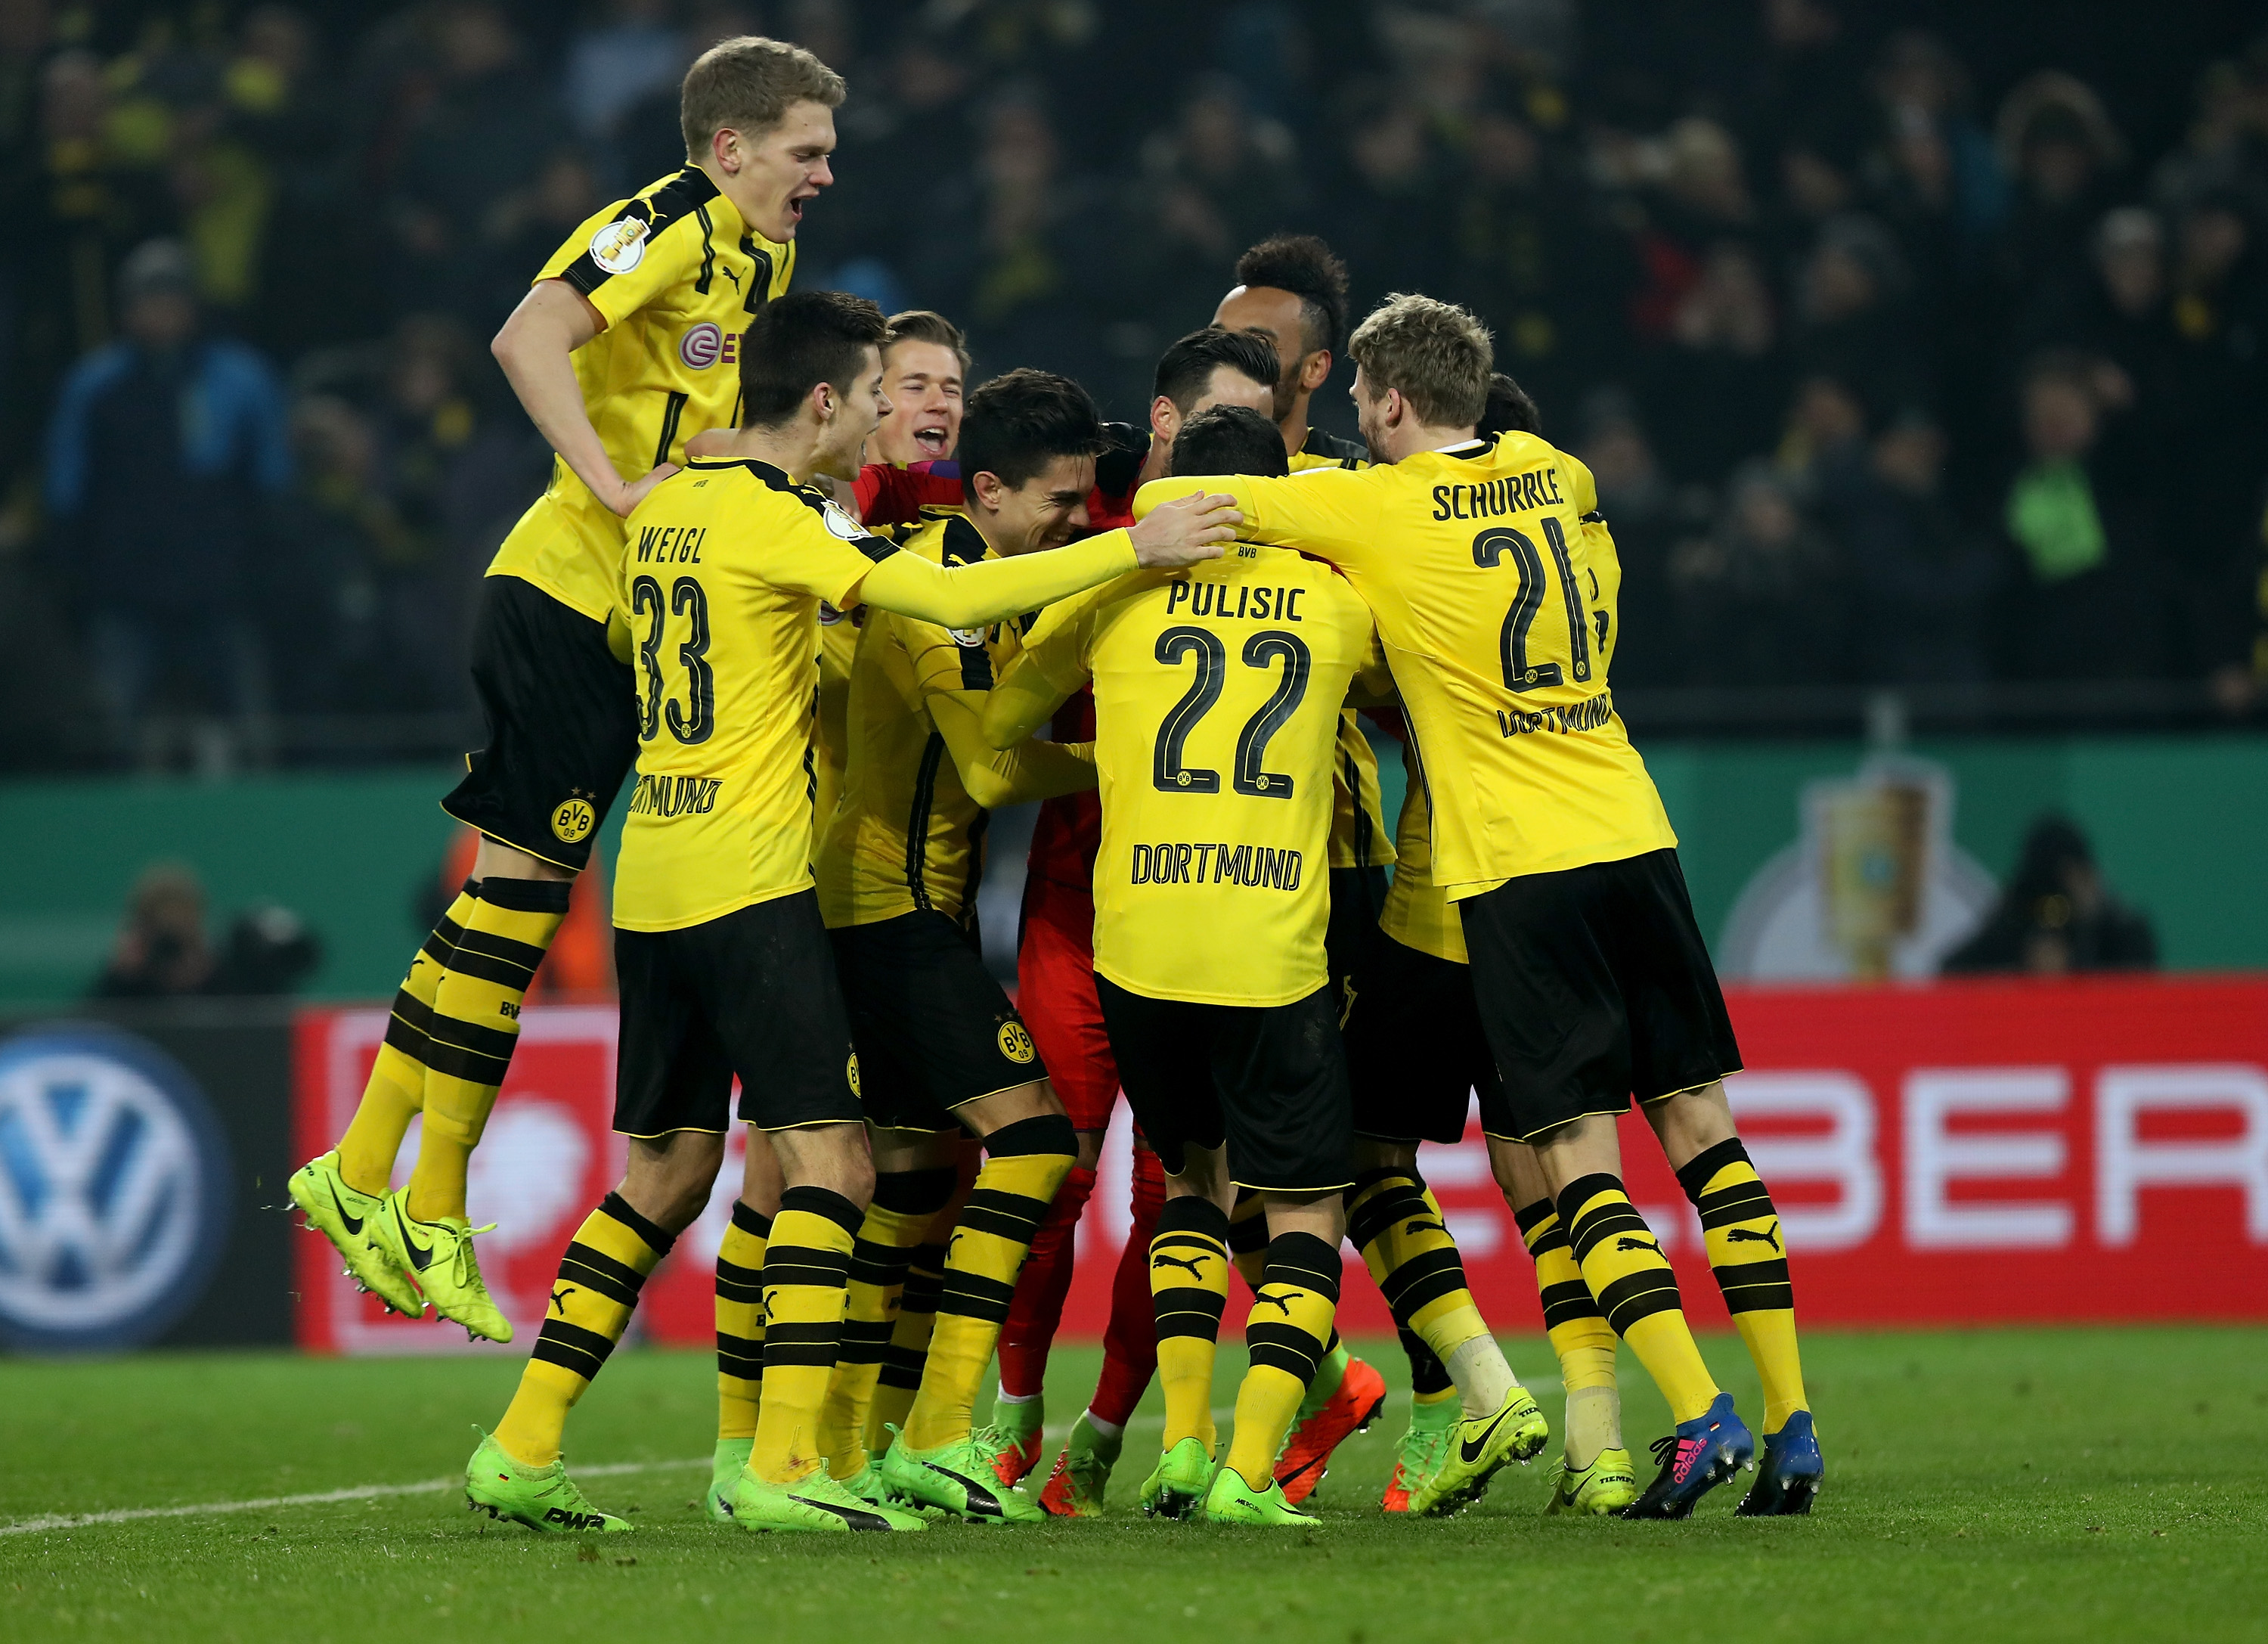 hertha bsc vs dortmund live stream